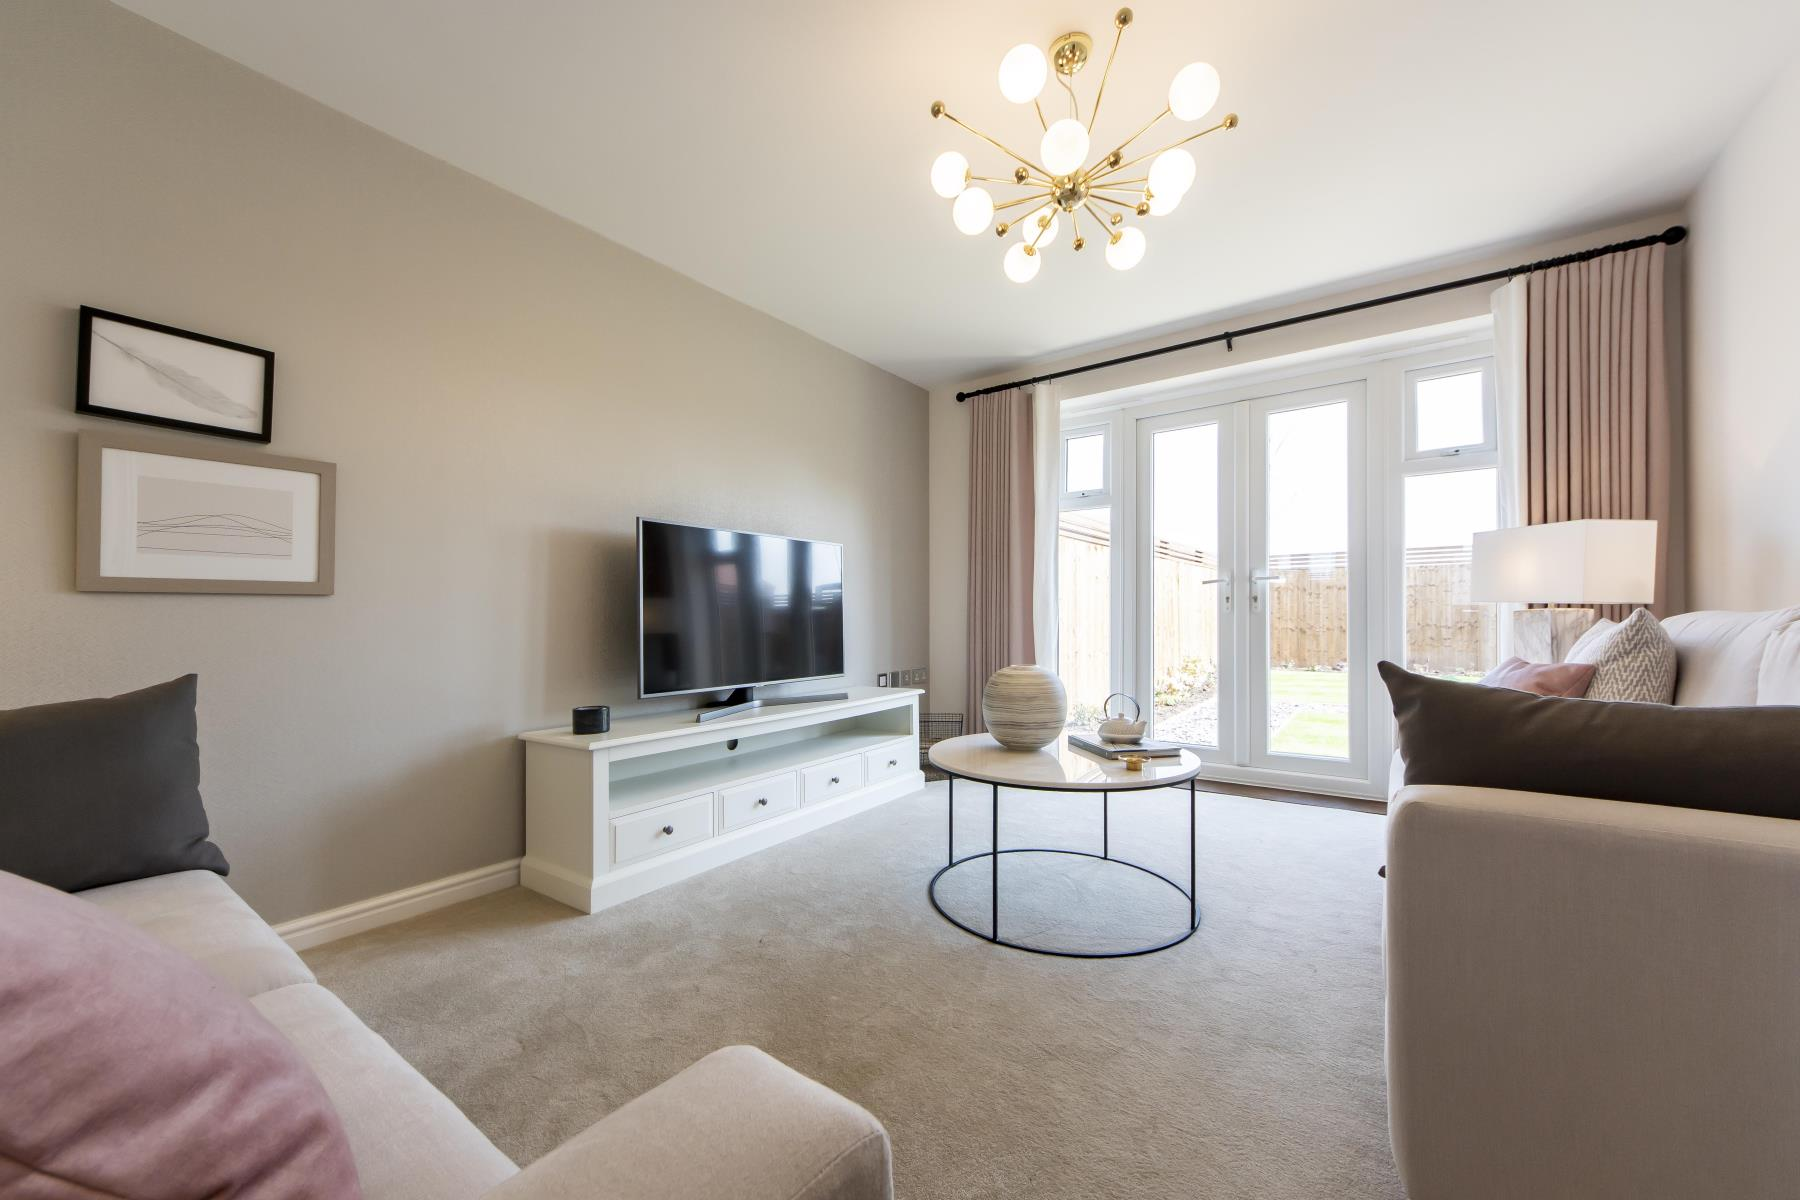 Aldenham-3bedroom-showhome_07 (1)